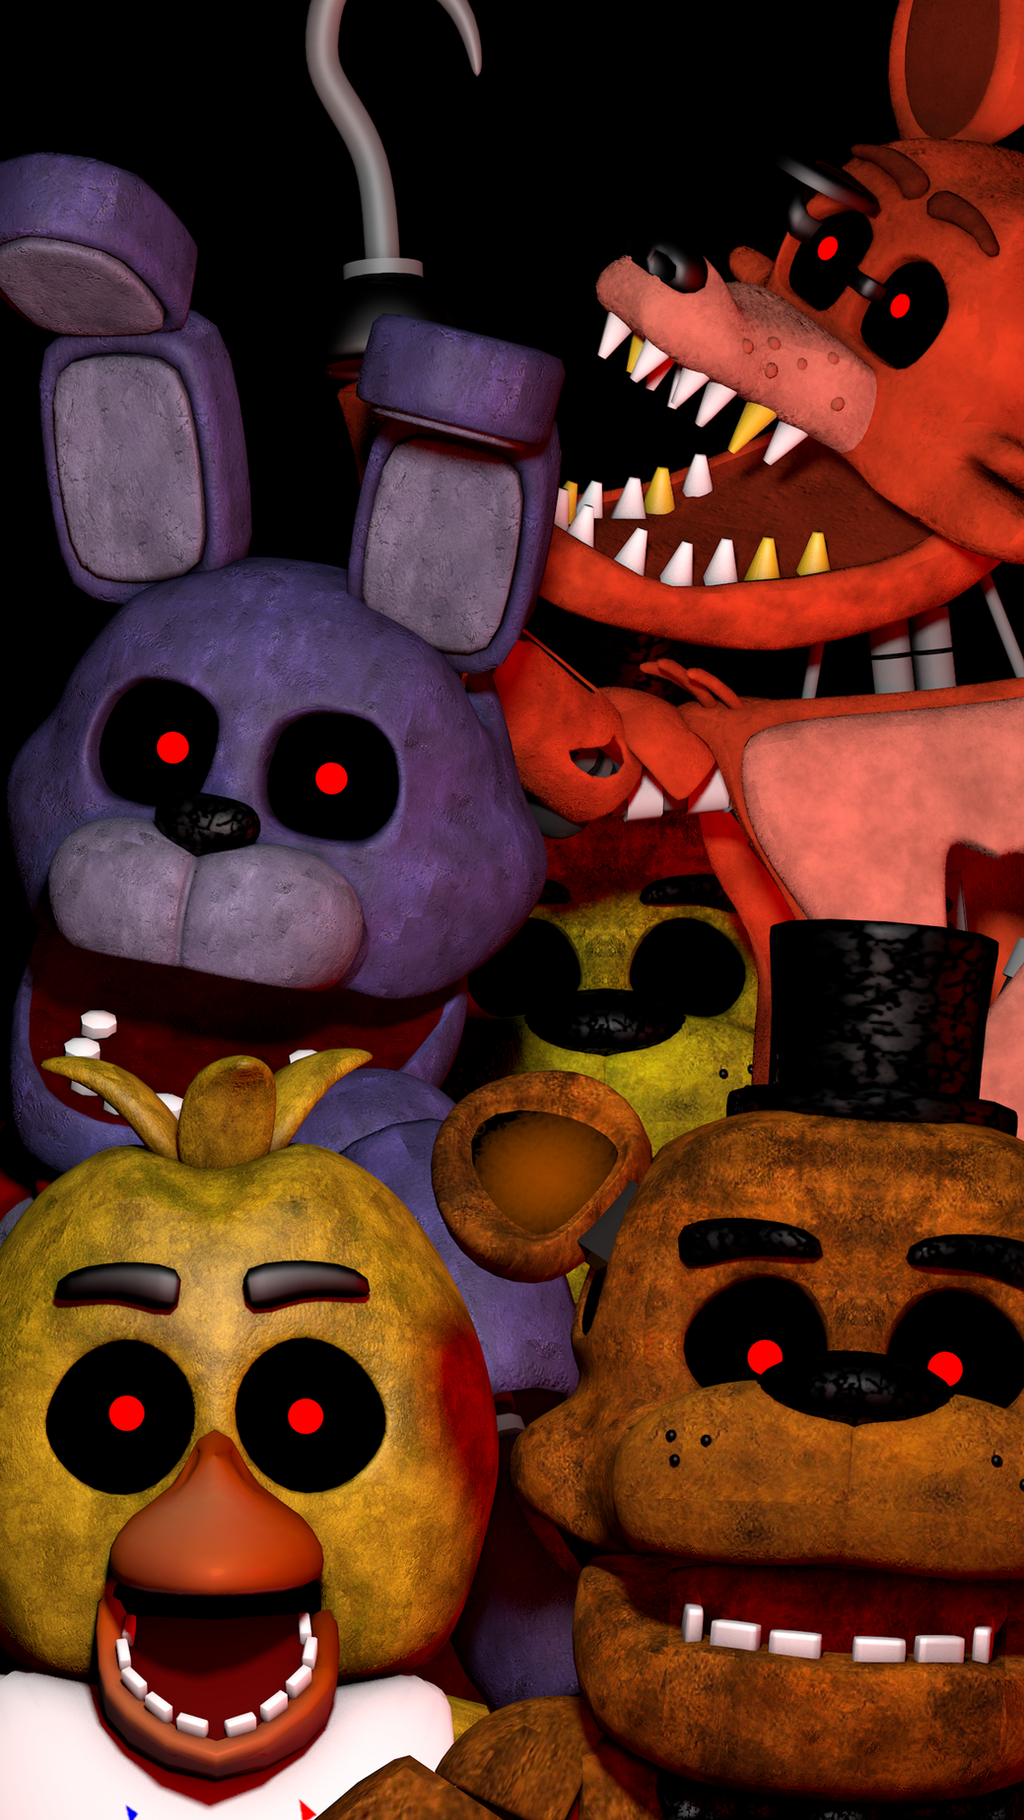 FNaF 1 Mobile Wallpaper by PuppetFactory on DeviantArt